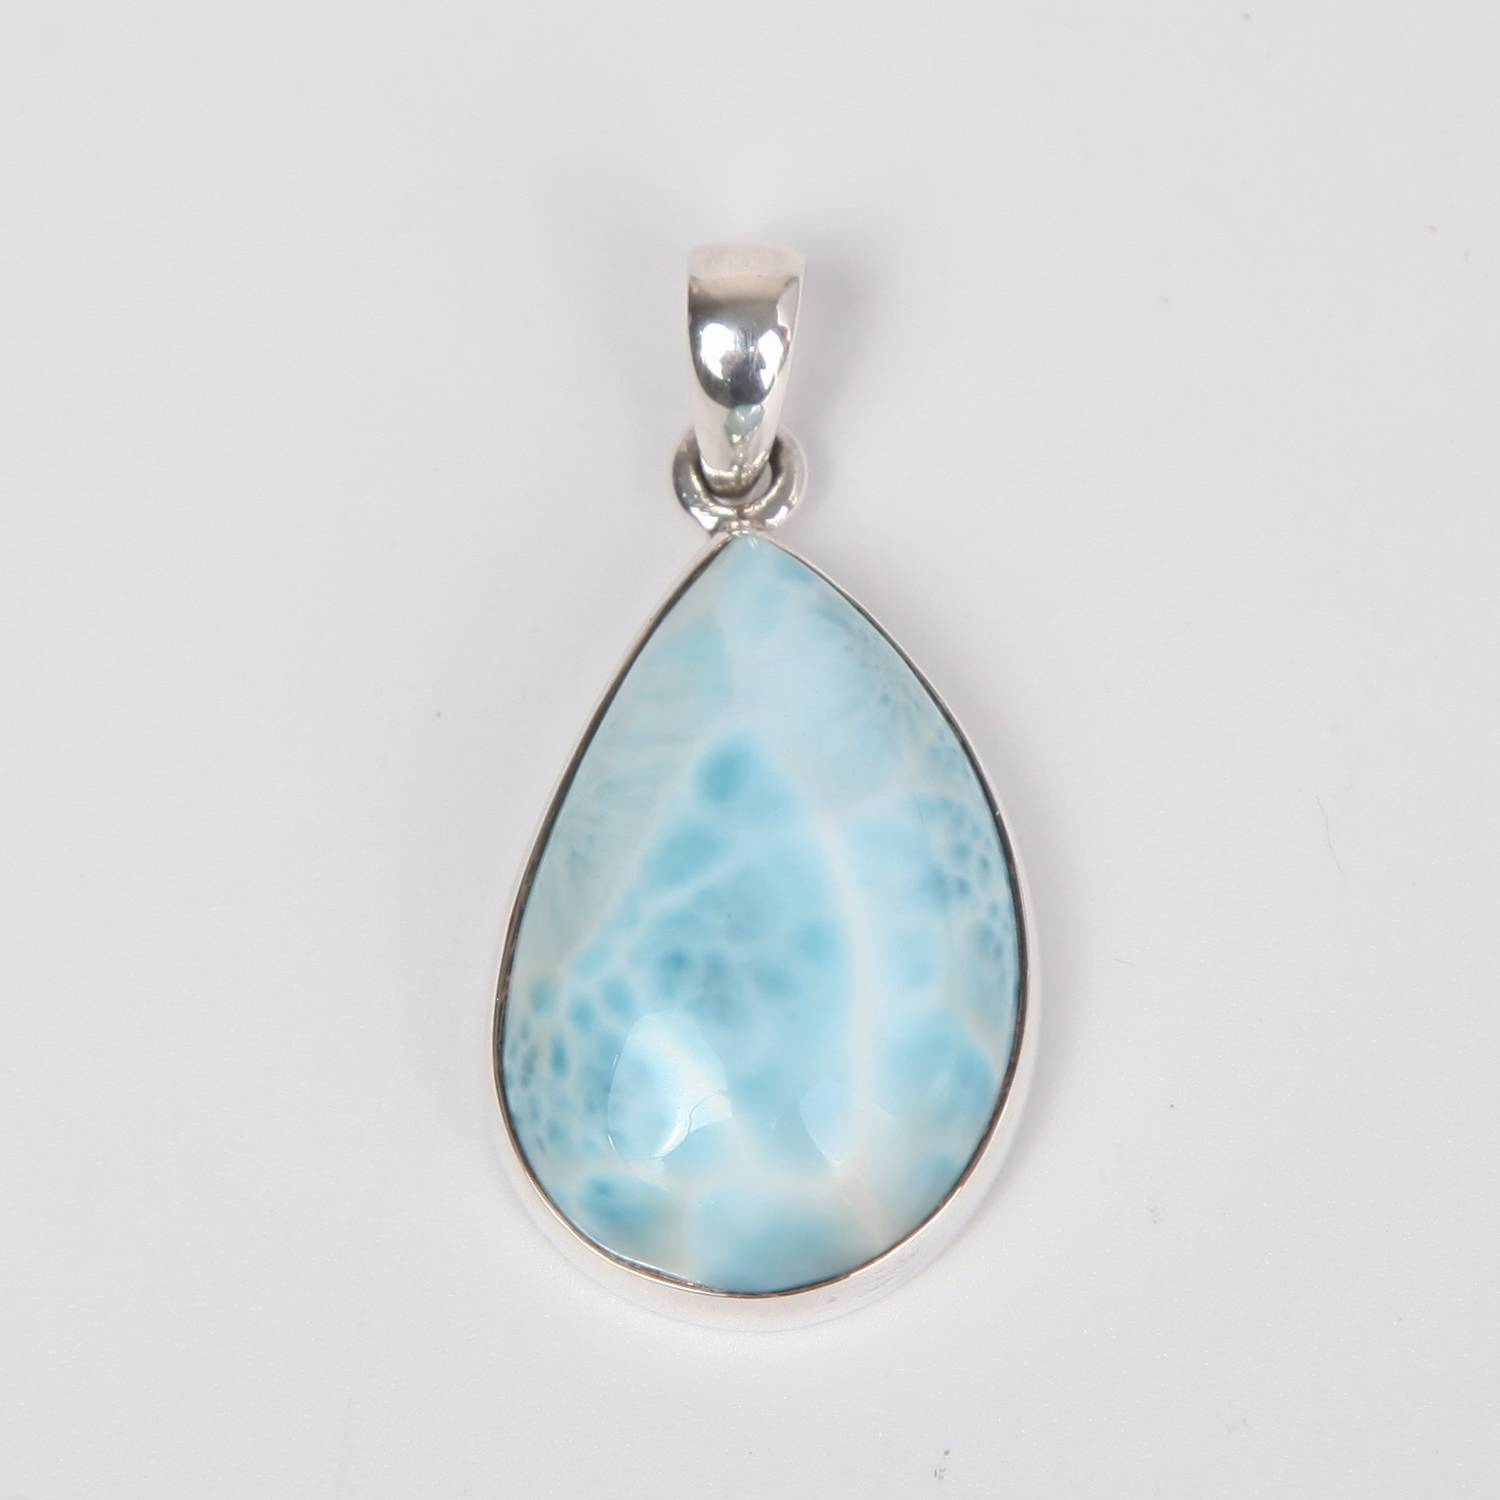 Sterling Silver Pendant with Larimar Stone